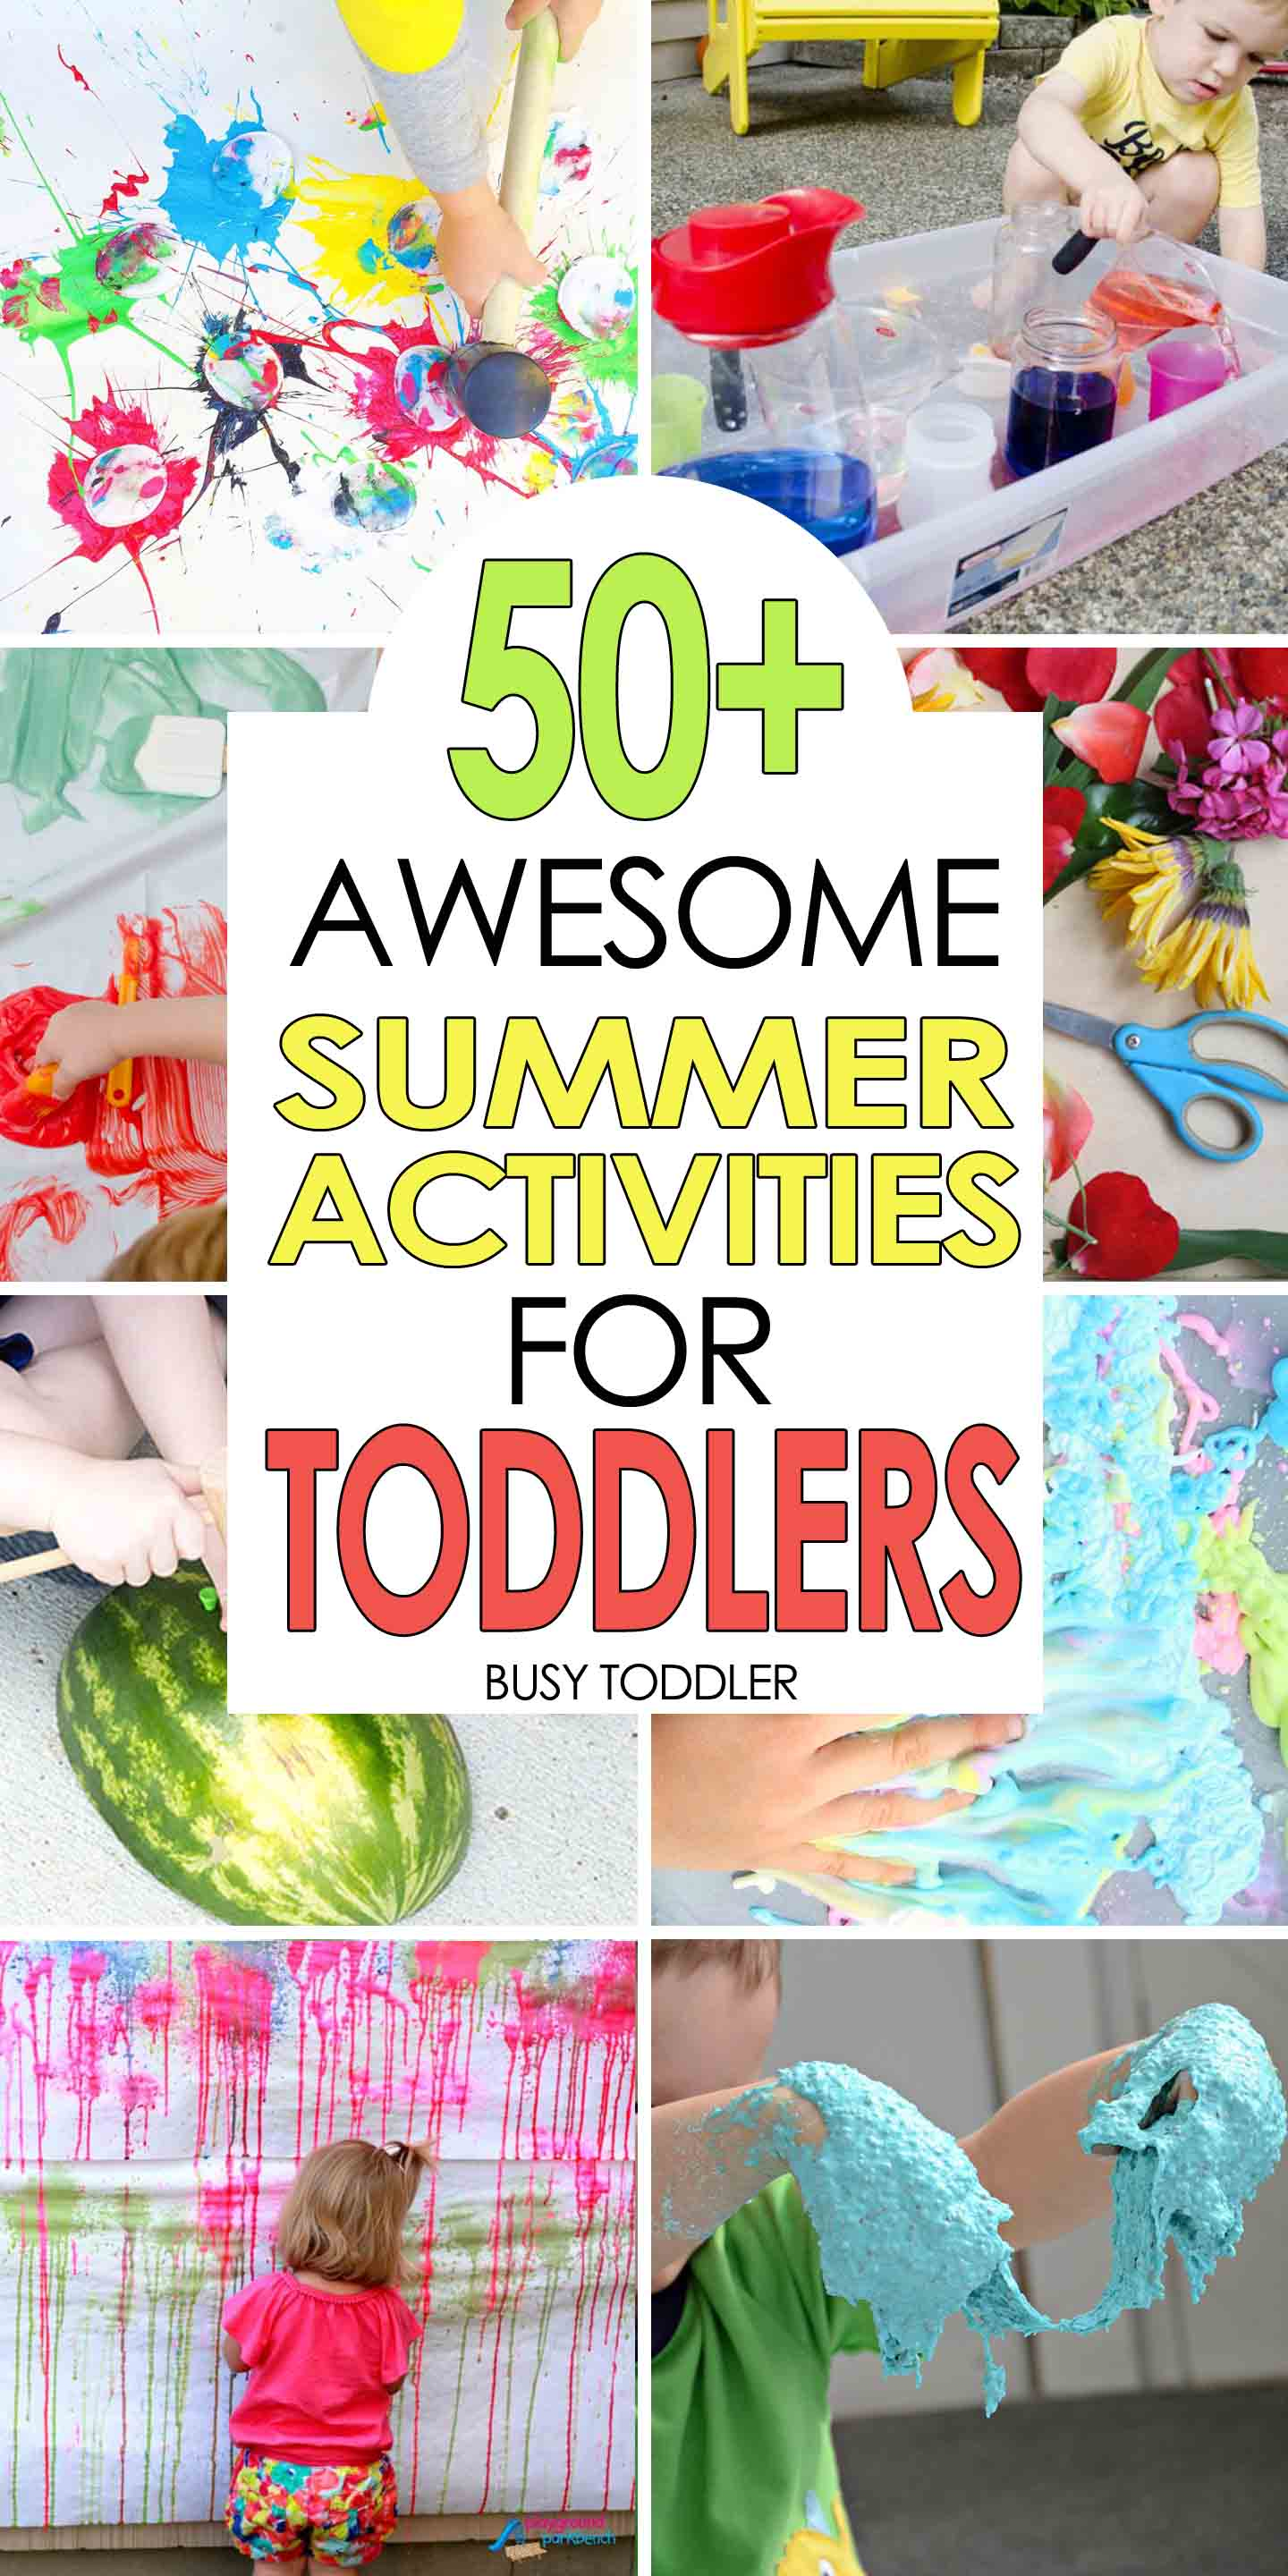 50 Awesome Summer Activities For Toddlers